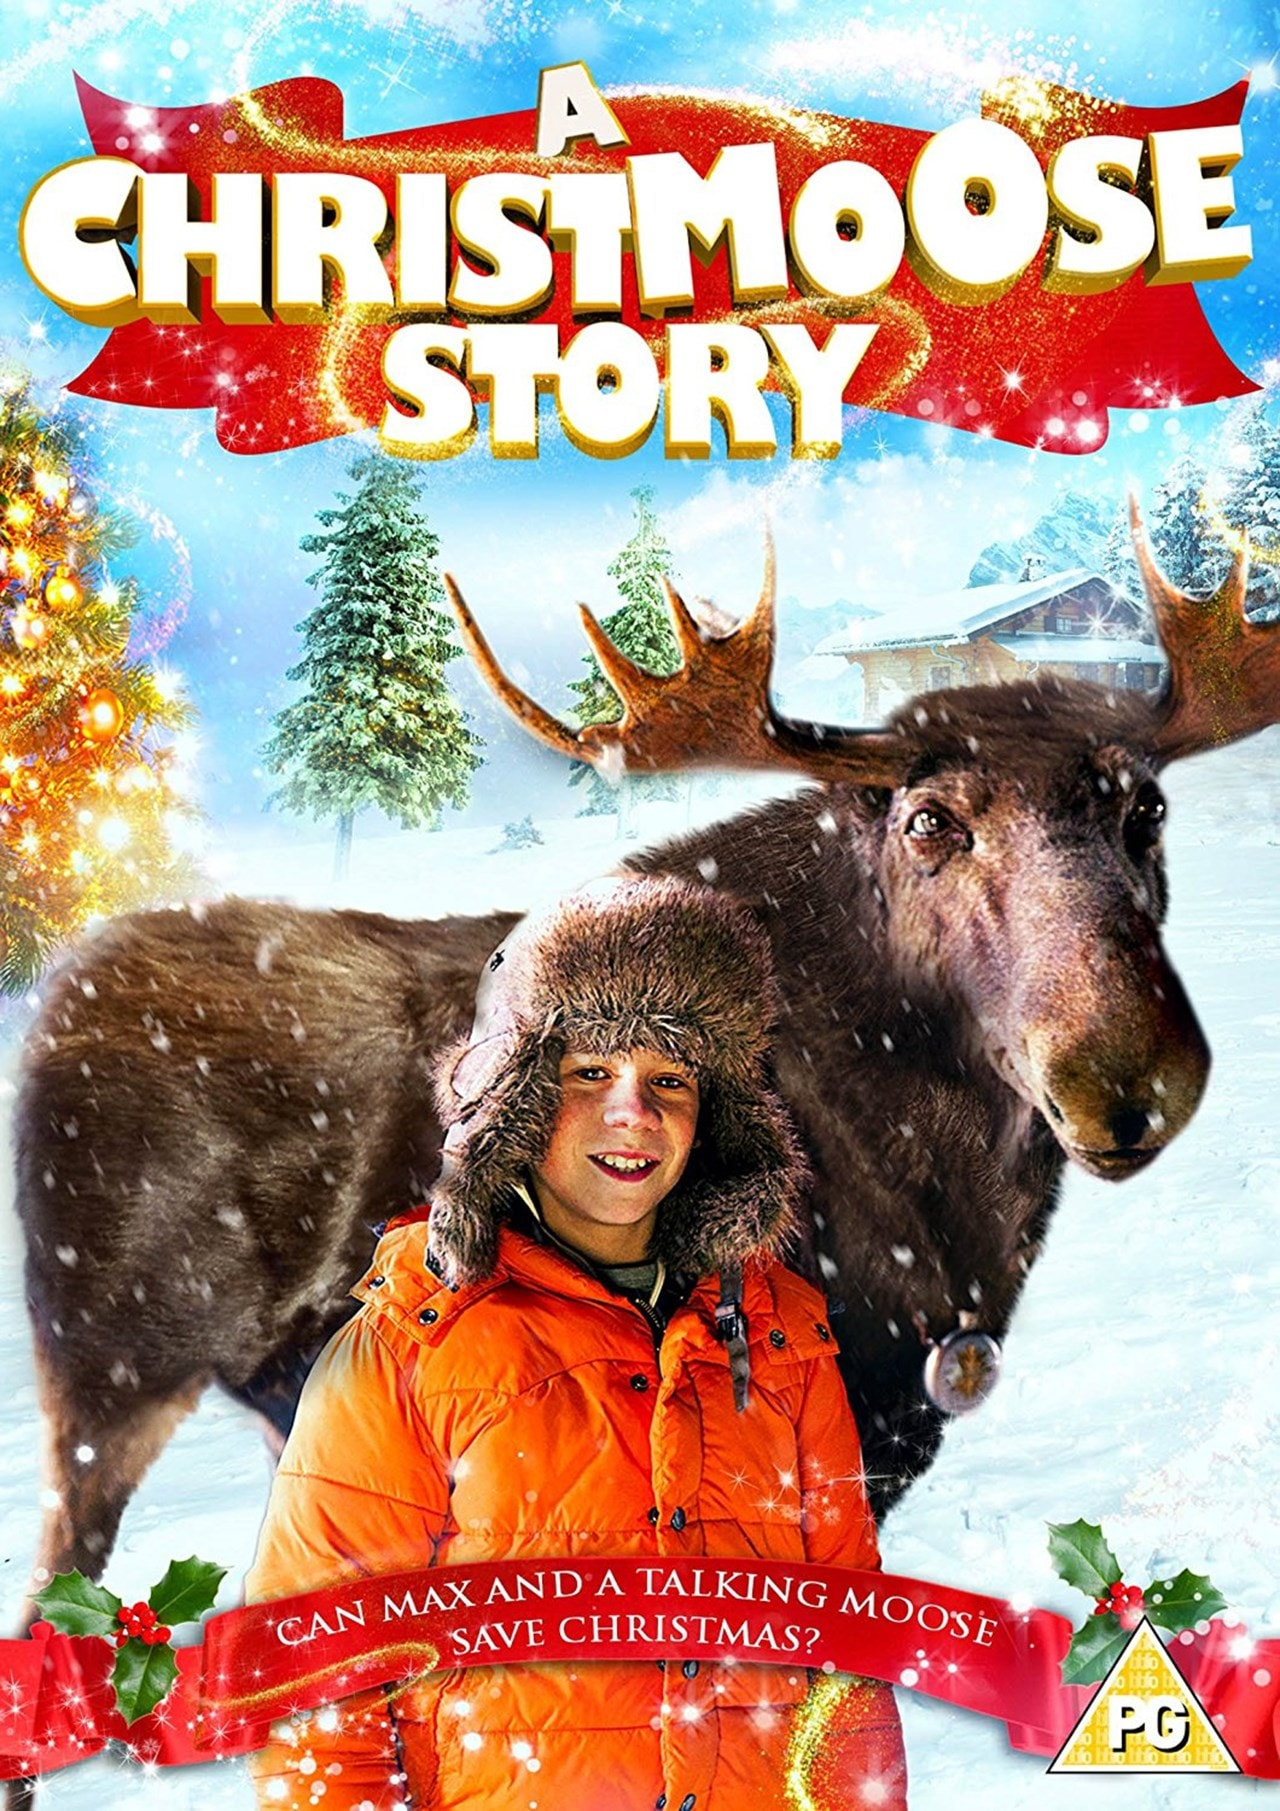 The Christmoose Story - 1